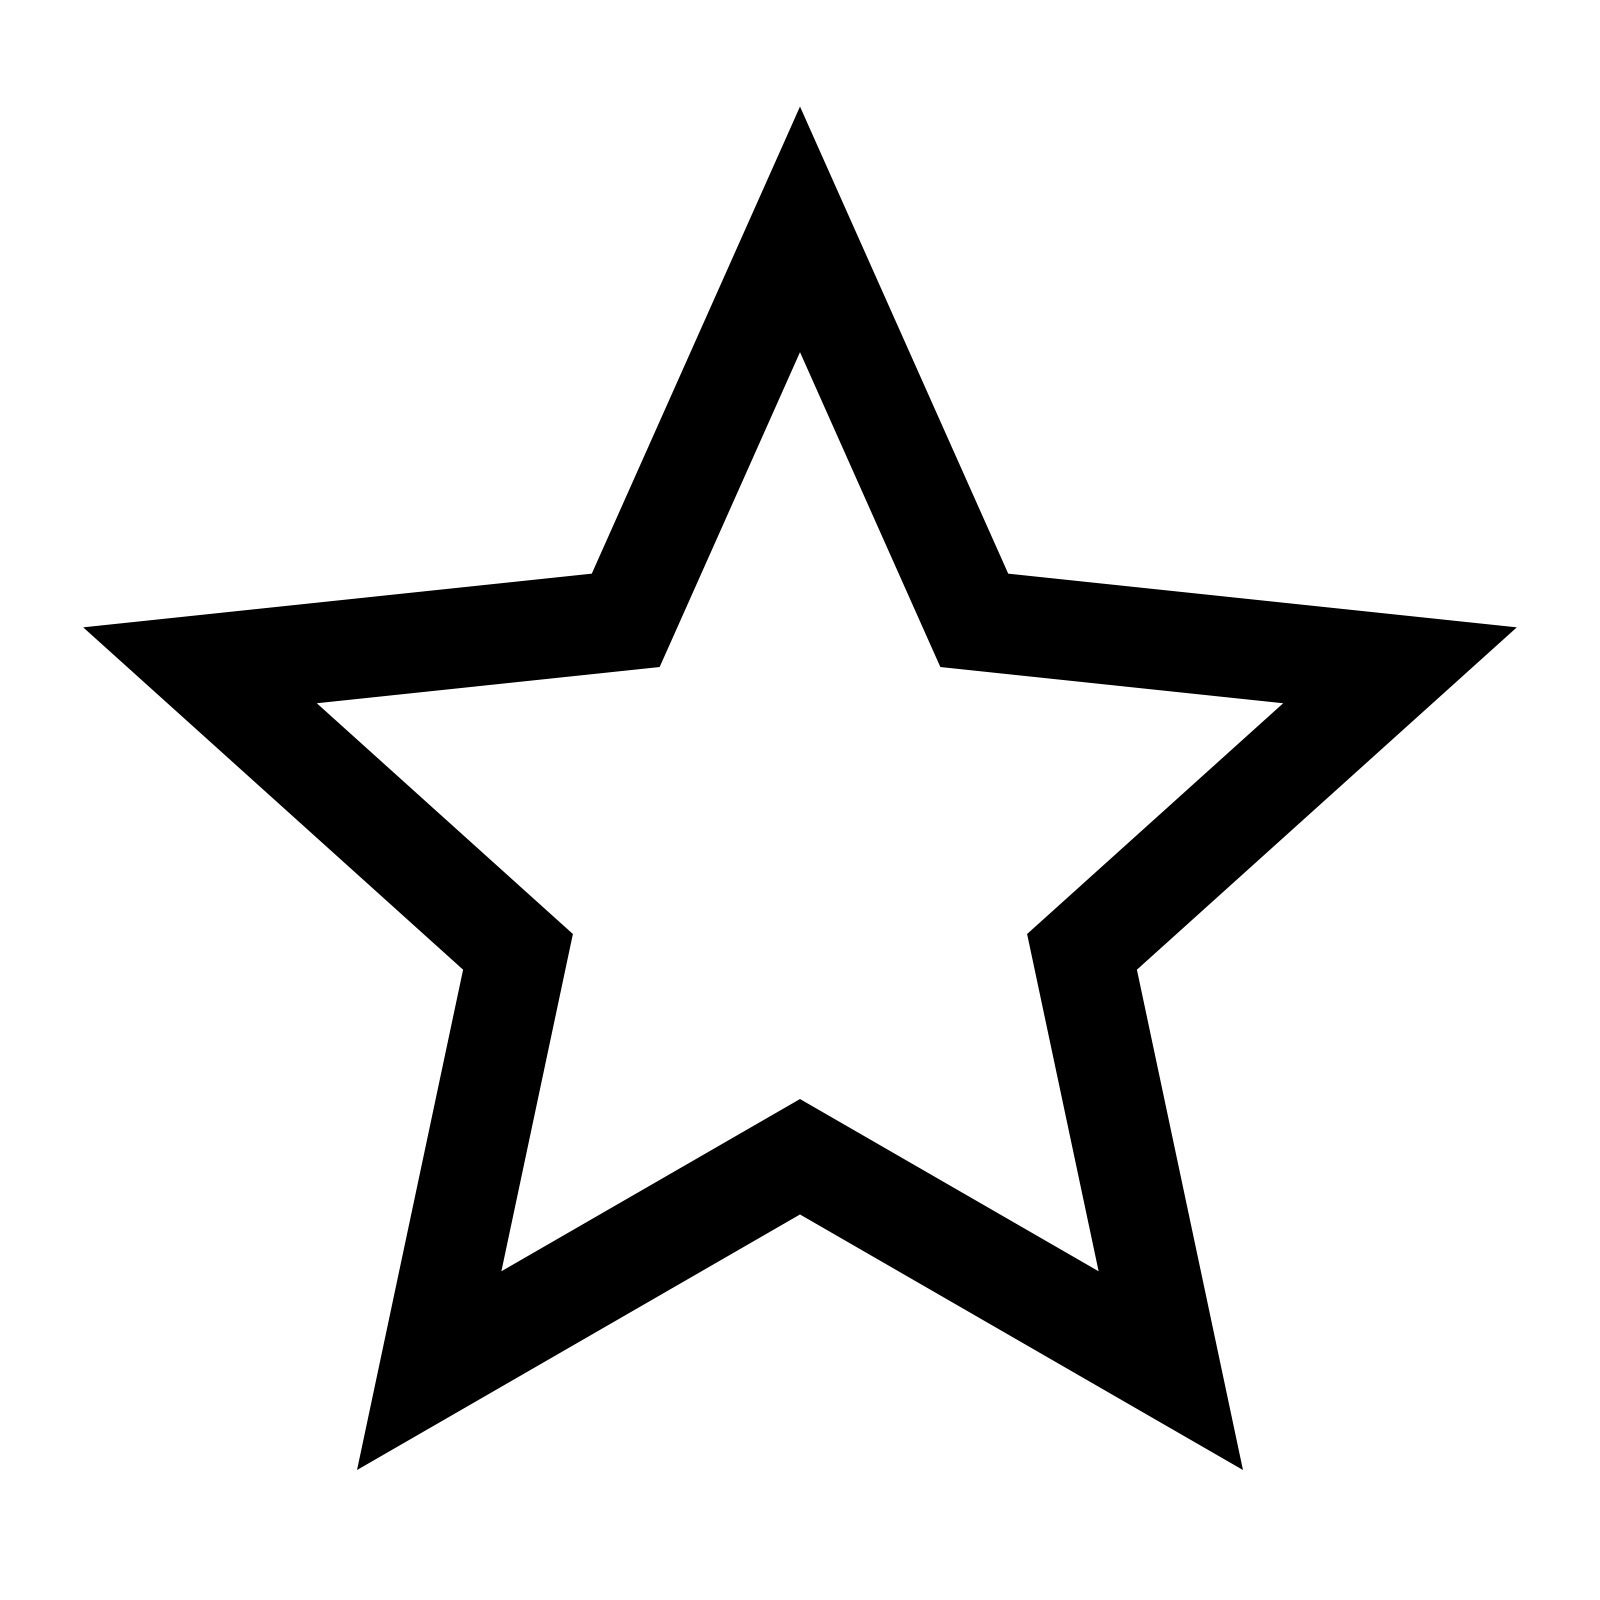 Star icon - Star PNG